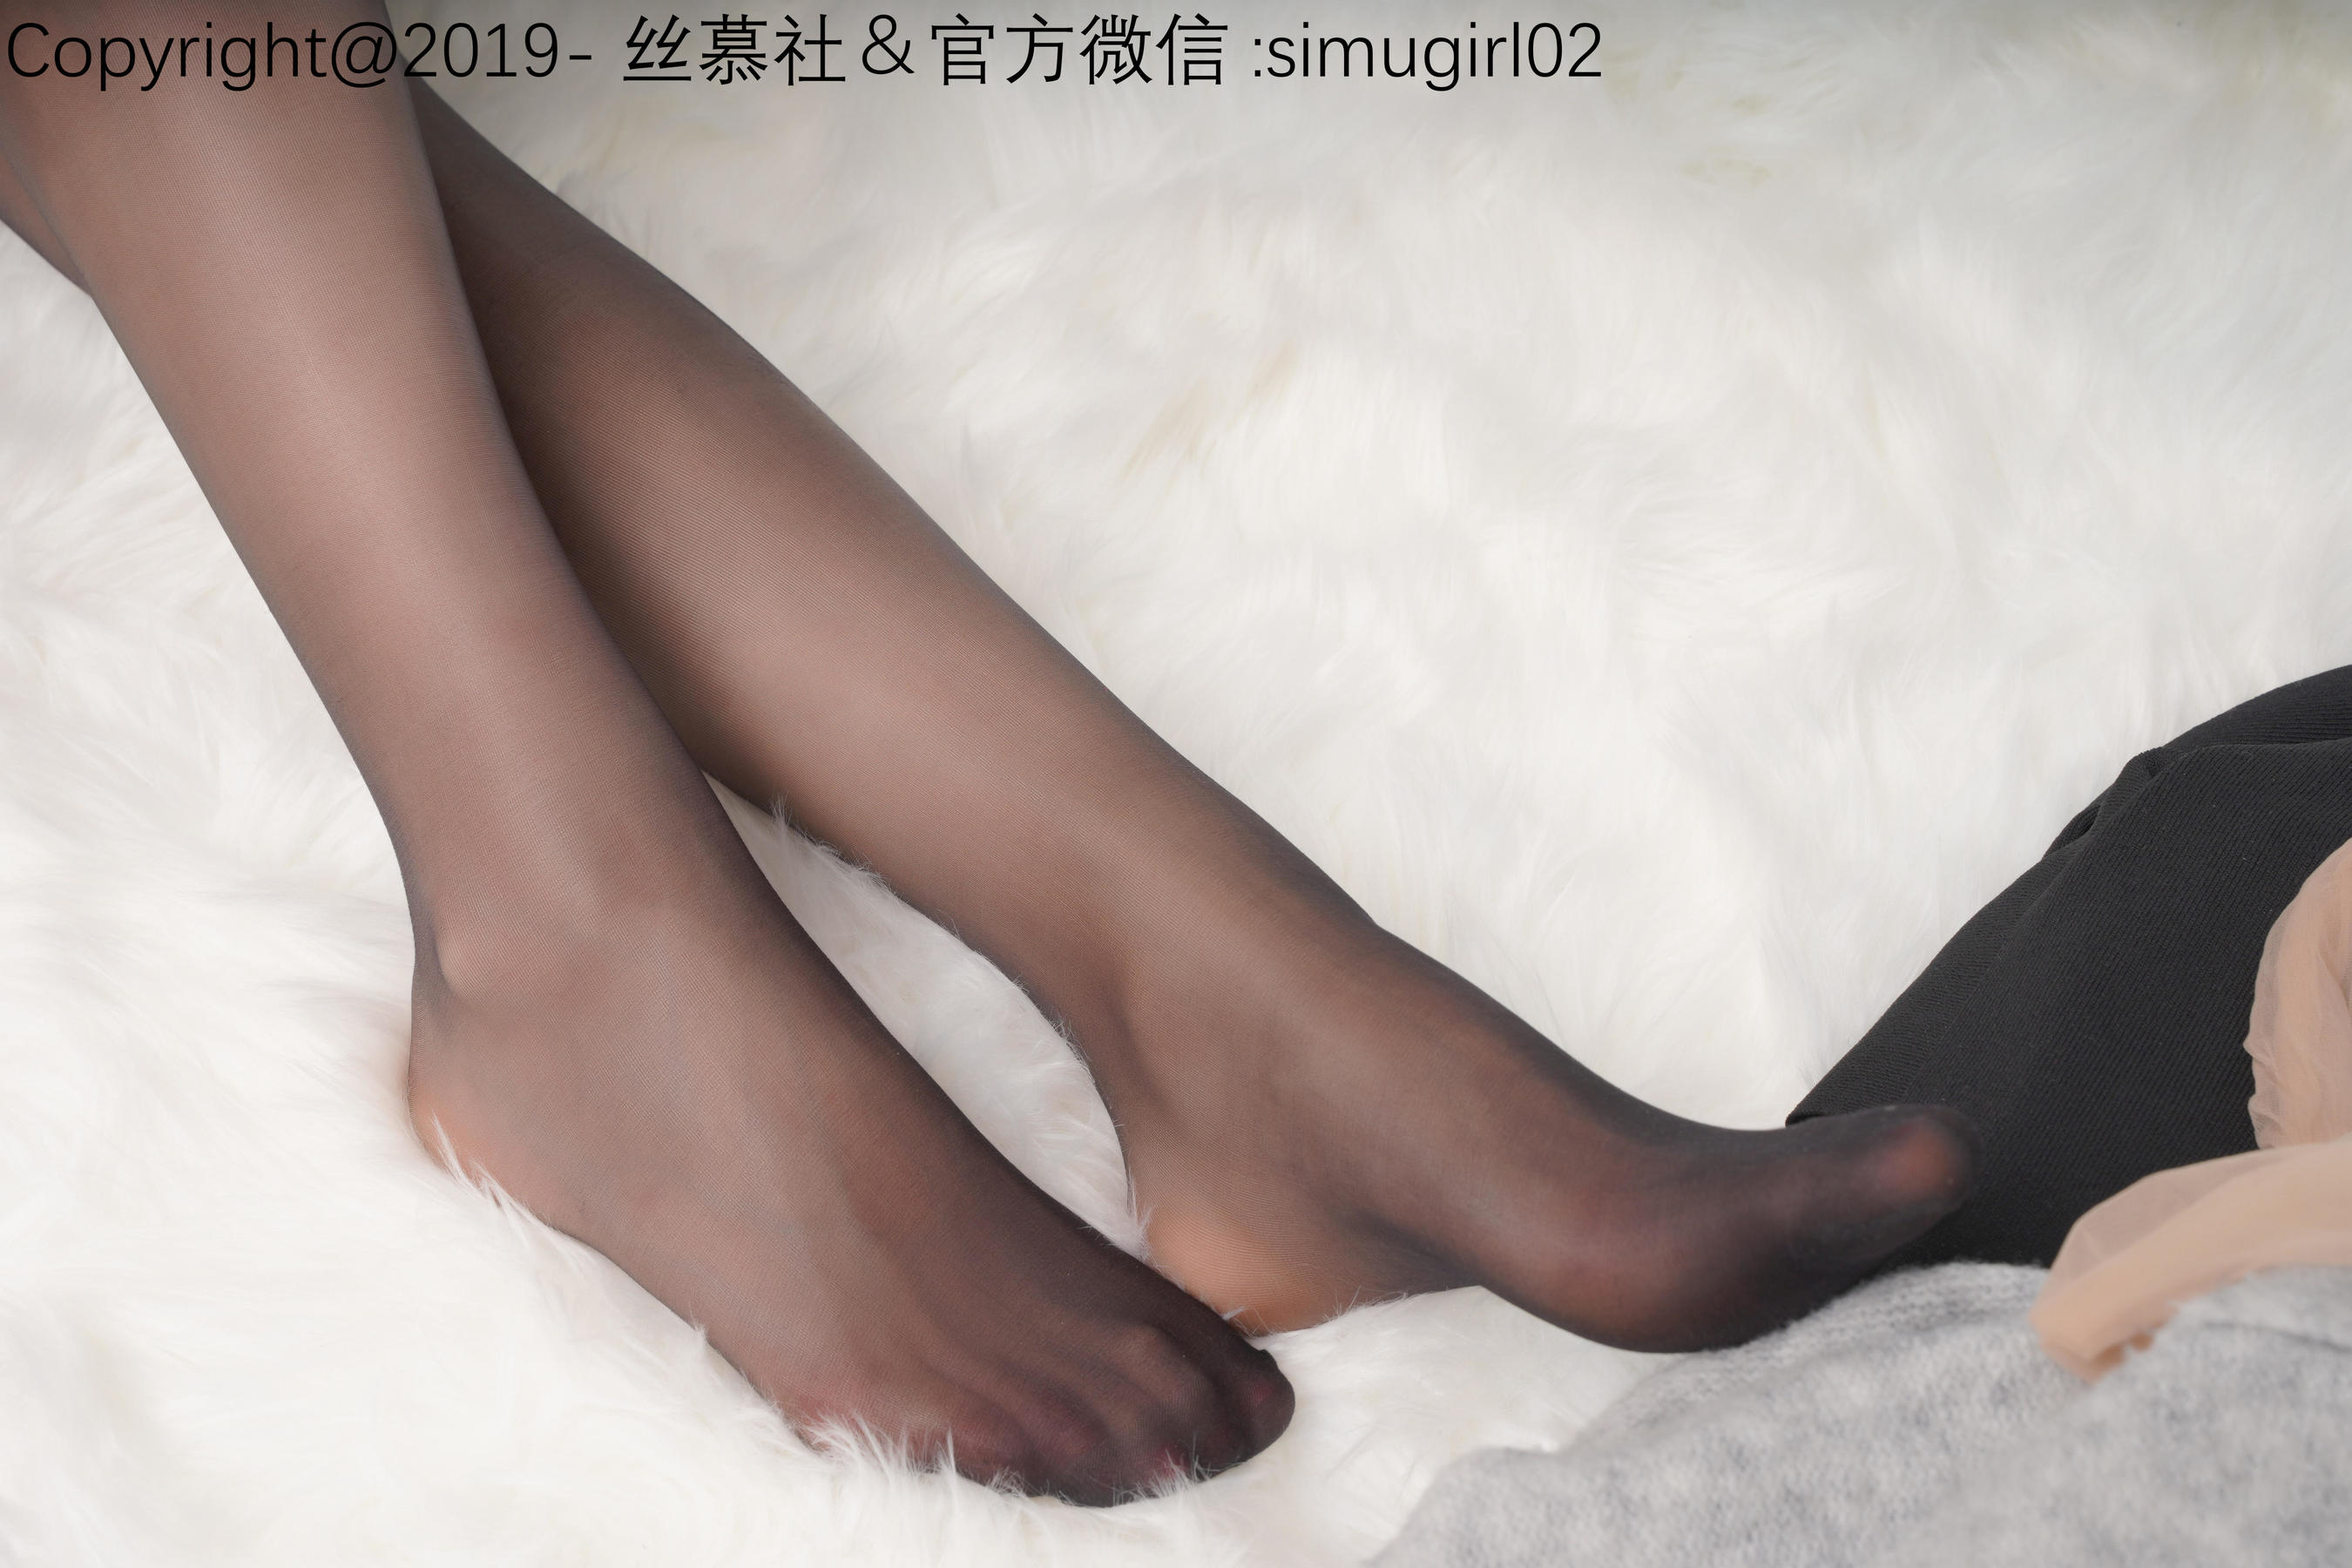 """[Simu] SM010 Yueyue-""""The Delight of Silky Foot"""" 58"""